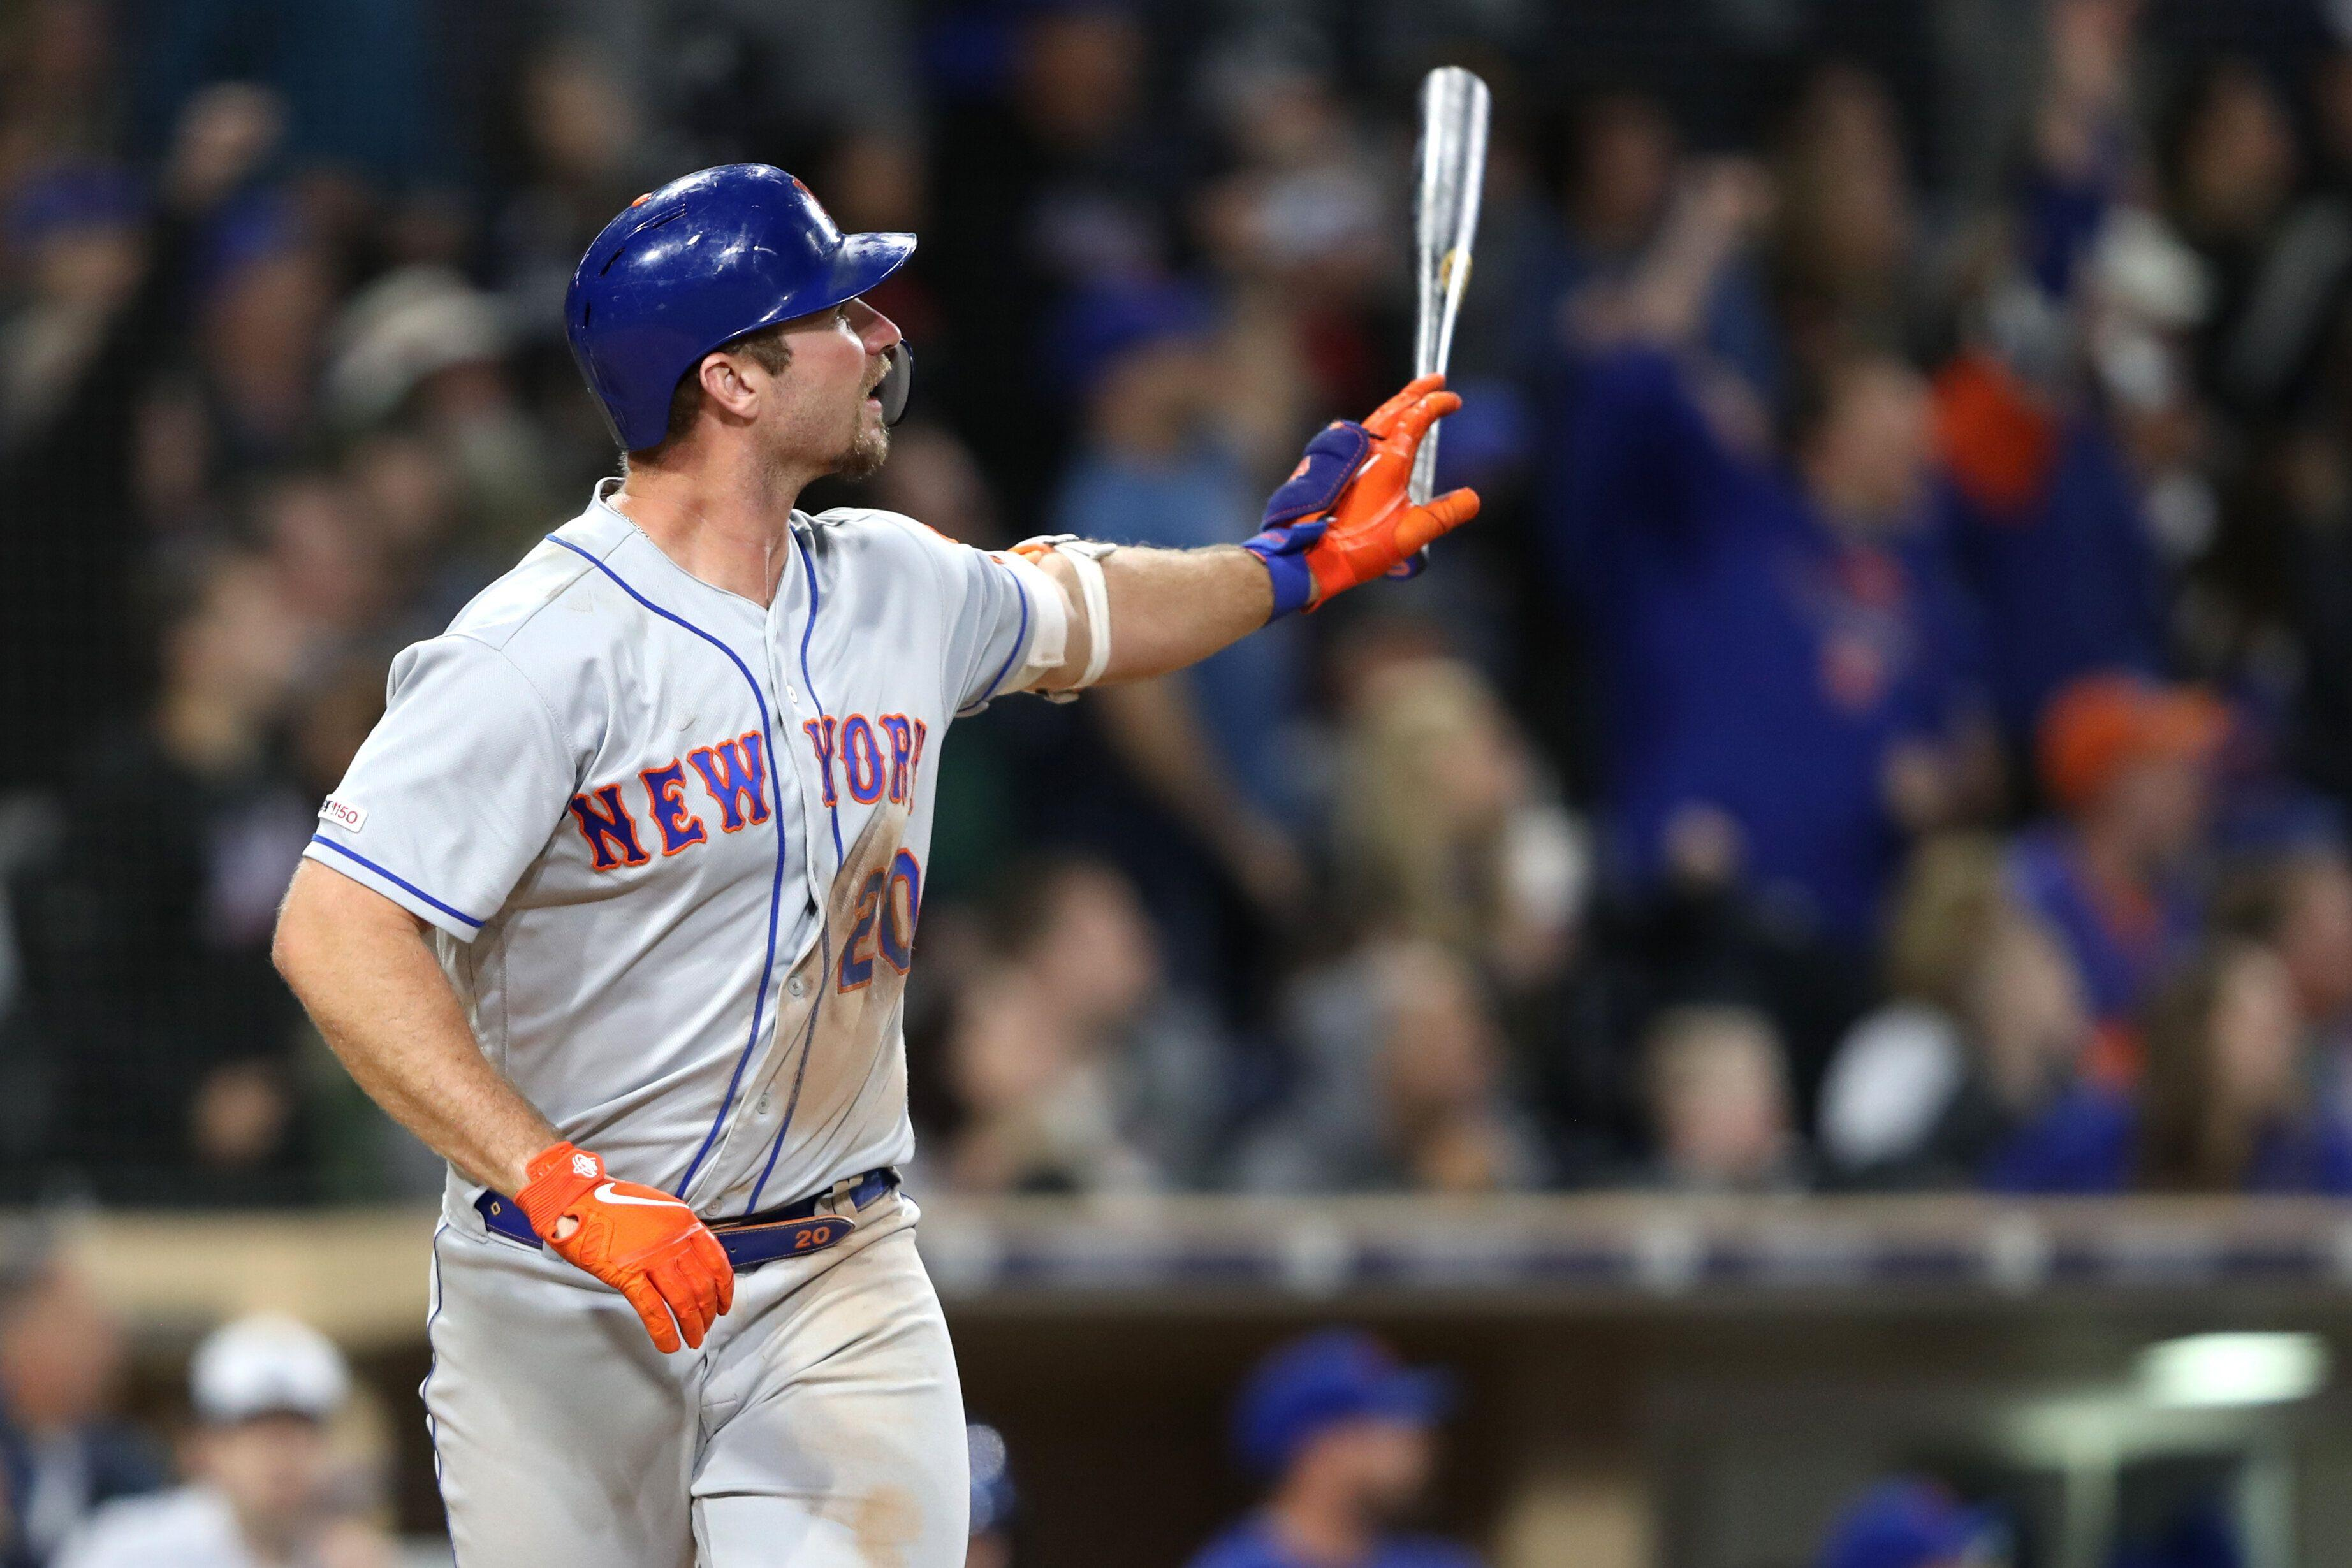 29be1b8bb Mets' Pete Alonso apologizes after bat flip nearly decks umpire